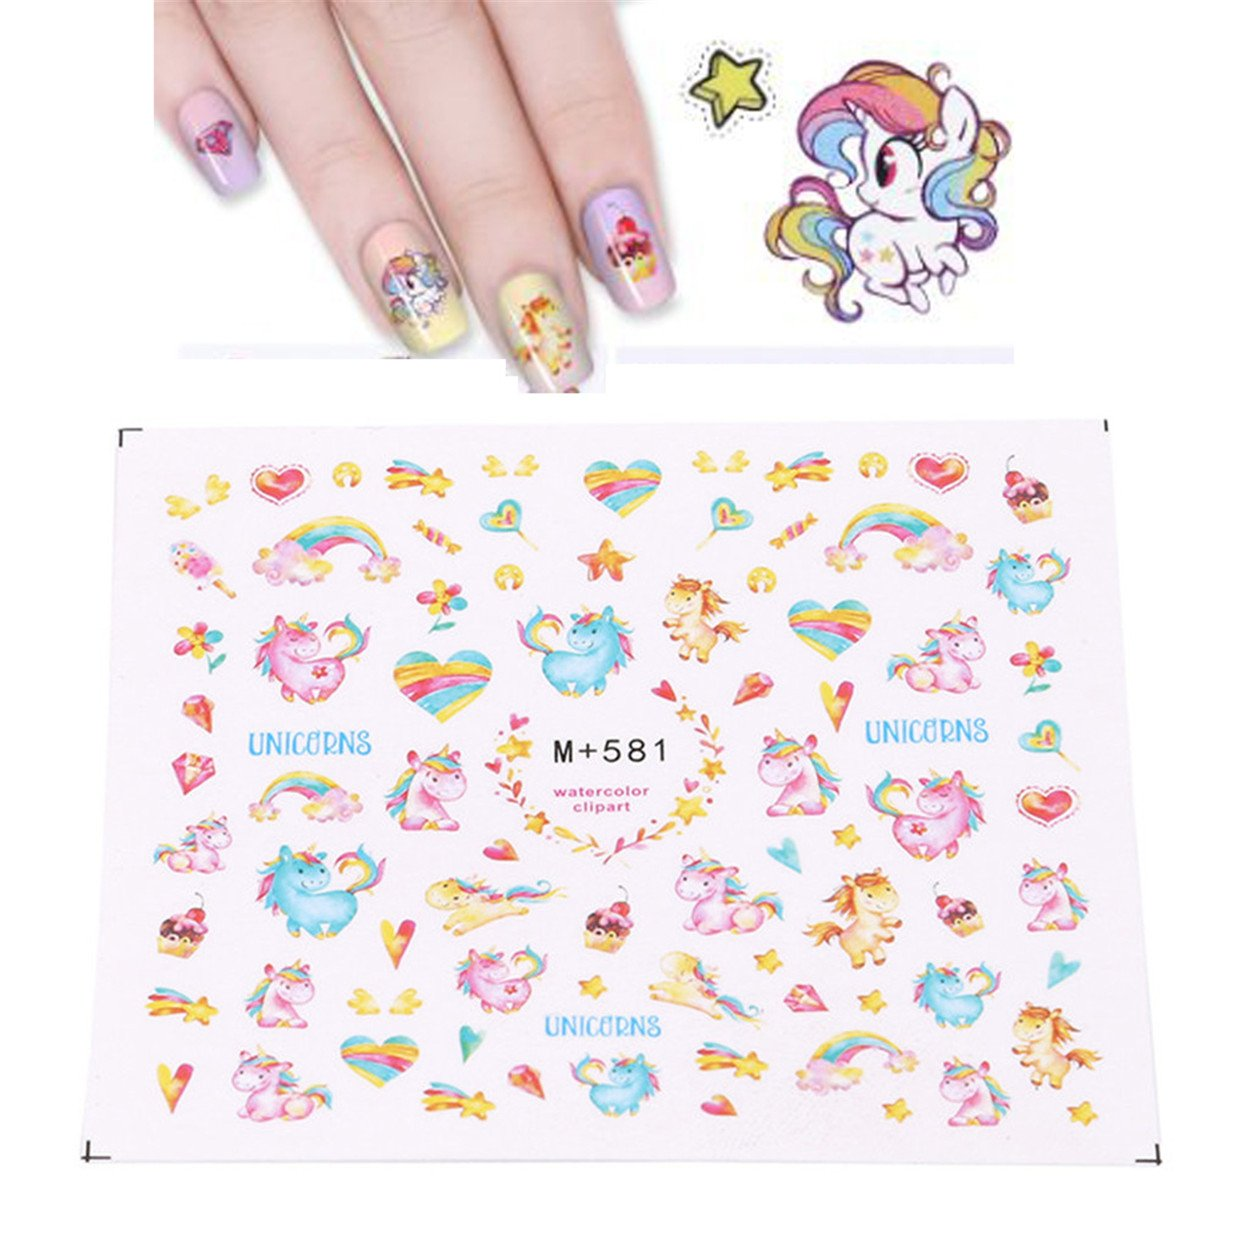 Ejy 5 Sheets Unicorn Nail Art Decoration Stickers Set Nail Art